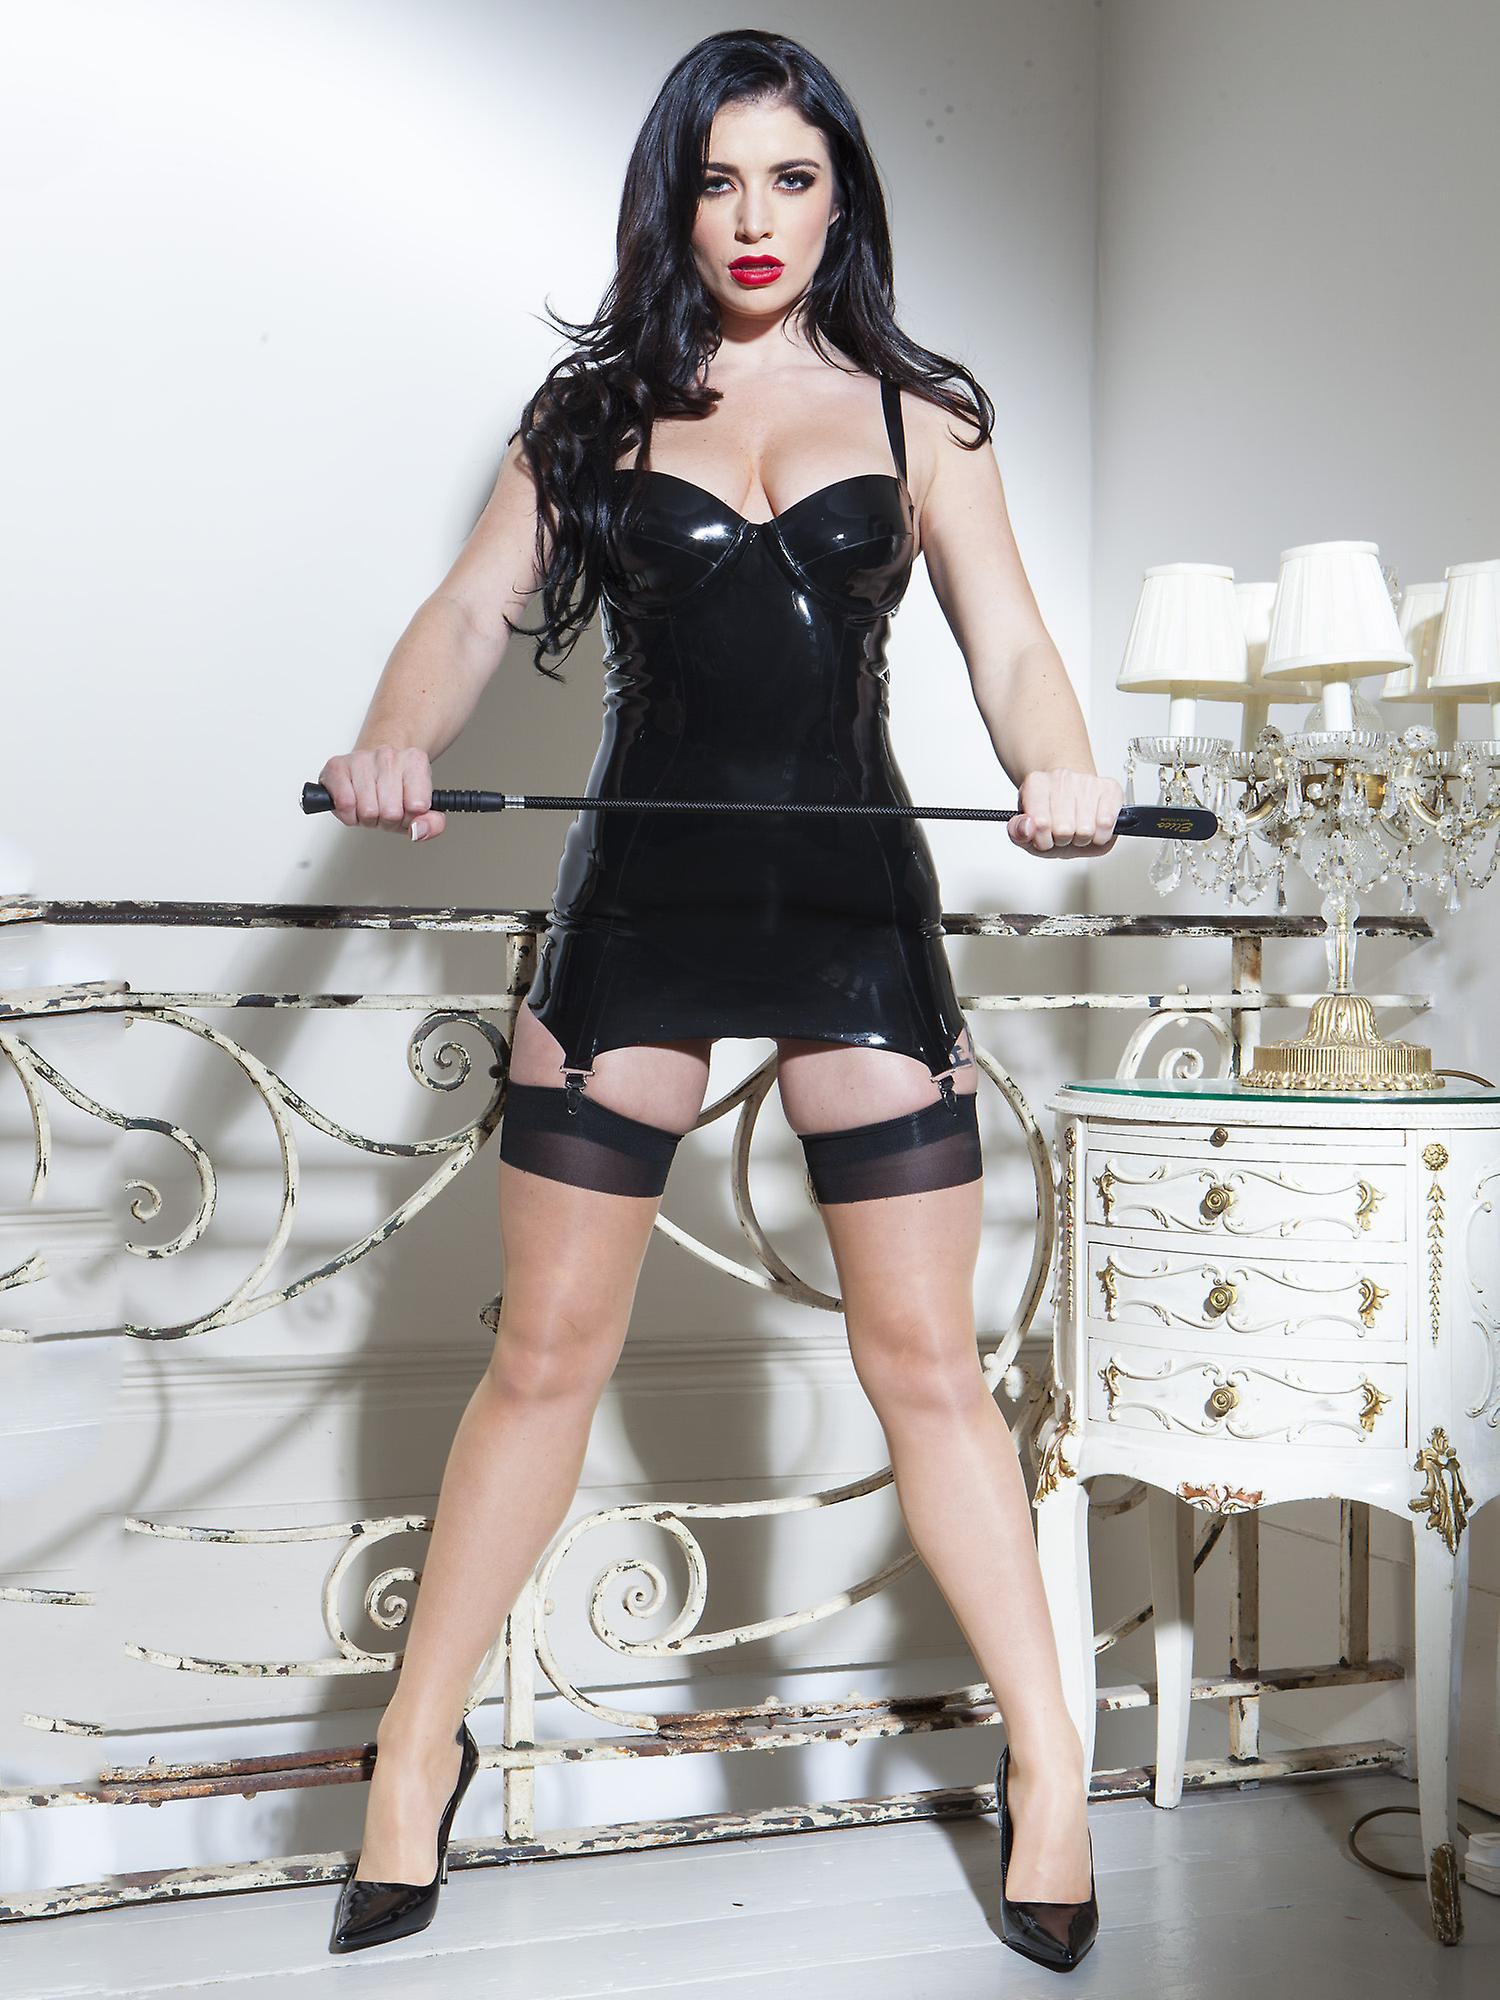 Honour Women's Slip On Dress in Sexy Rubber Provocative Suspender Outfit